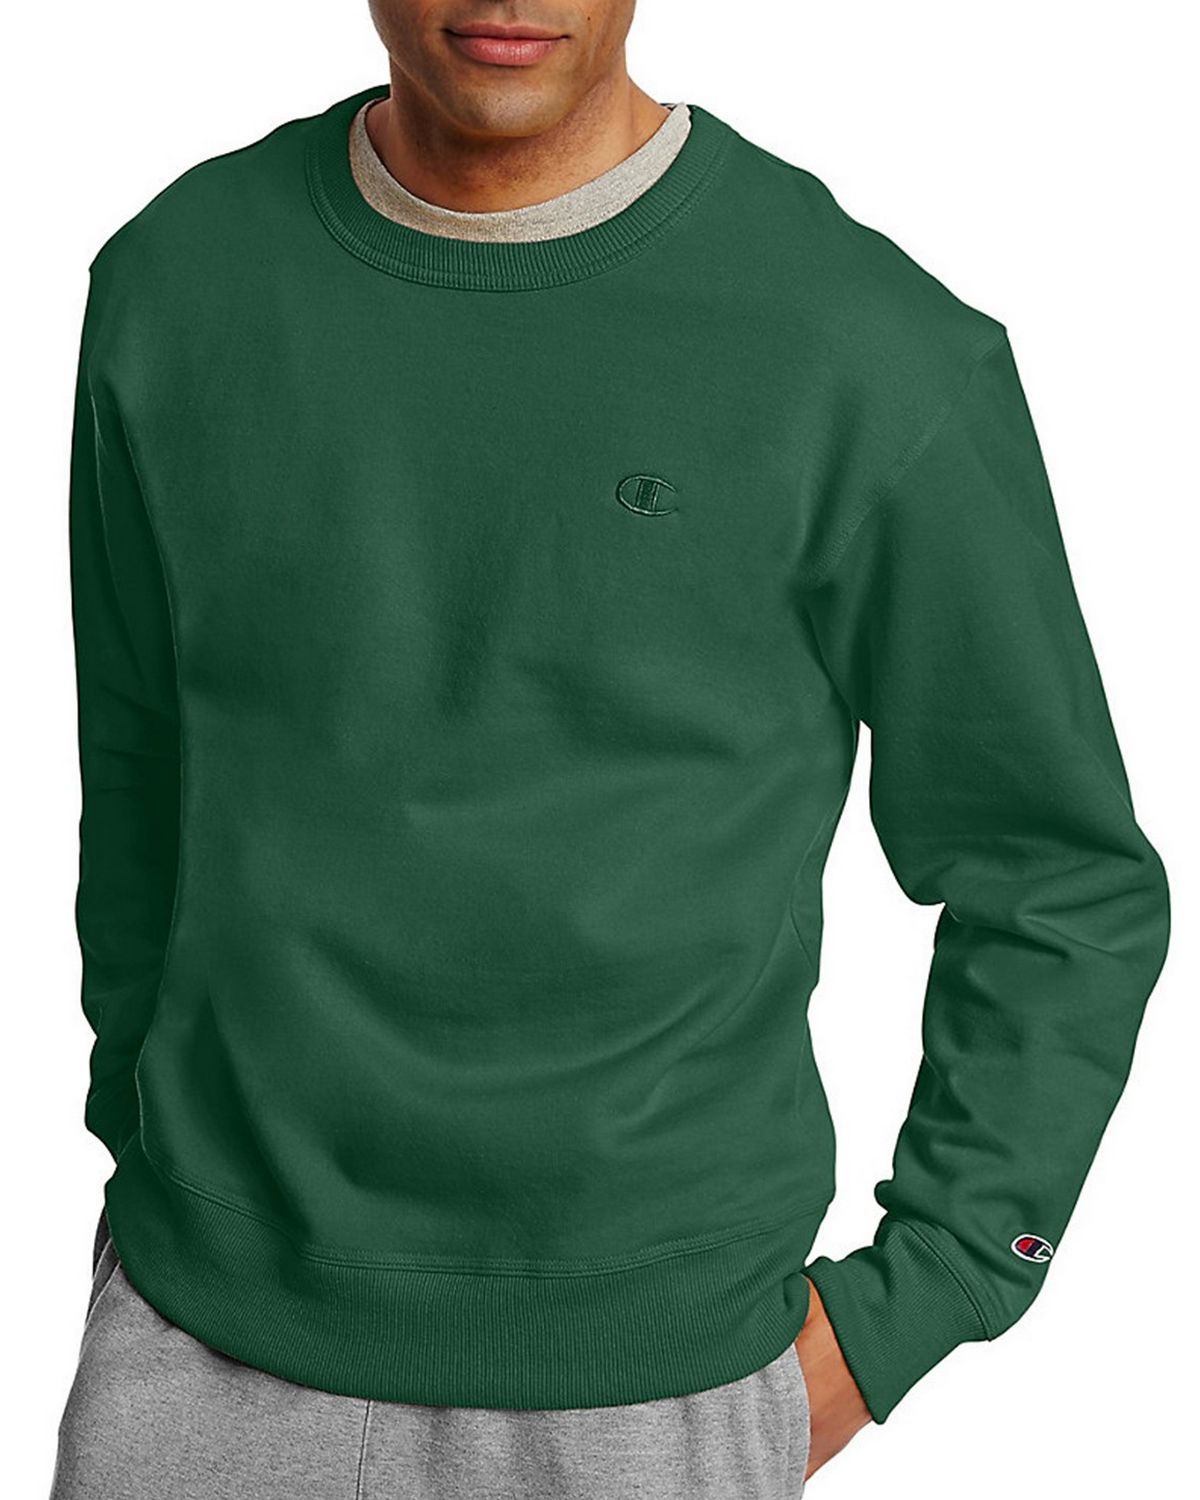 Champion S0888 Mens Fleece Pullover Crew - Dark Green - XL S0888